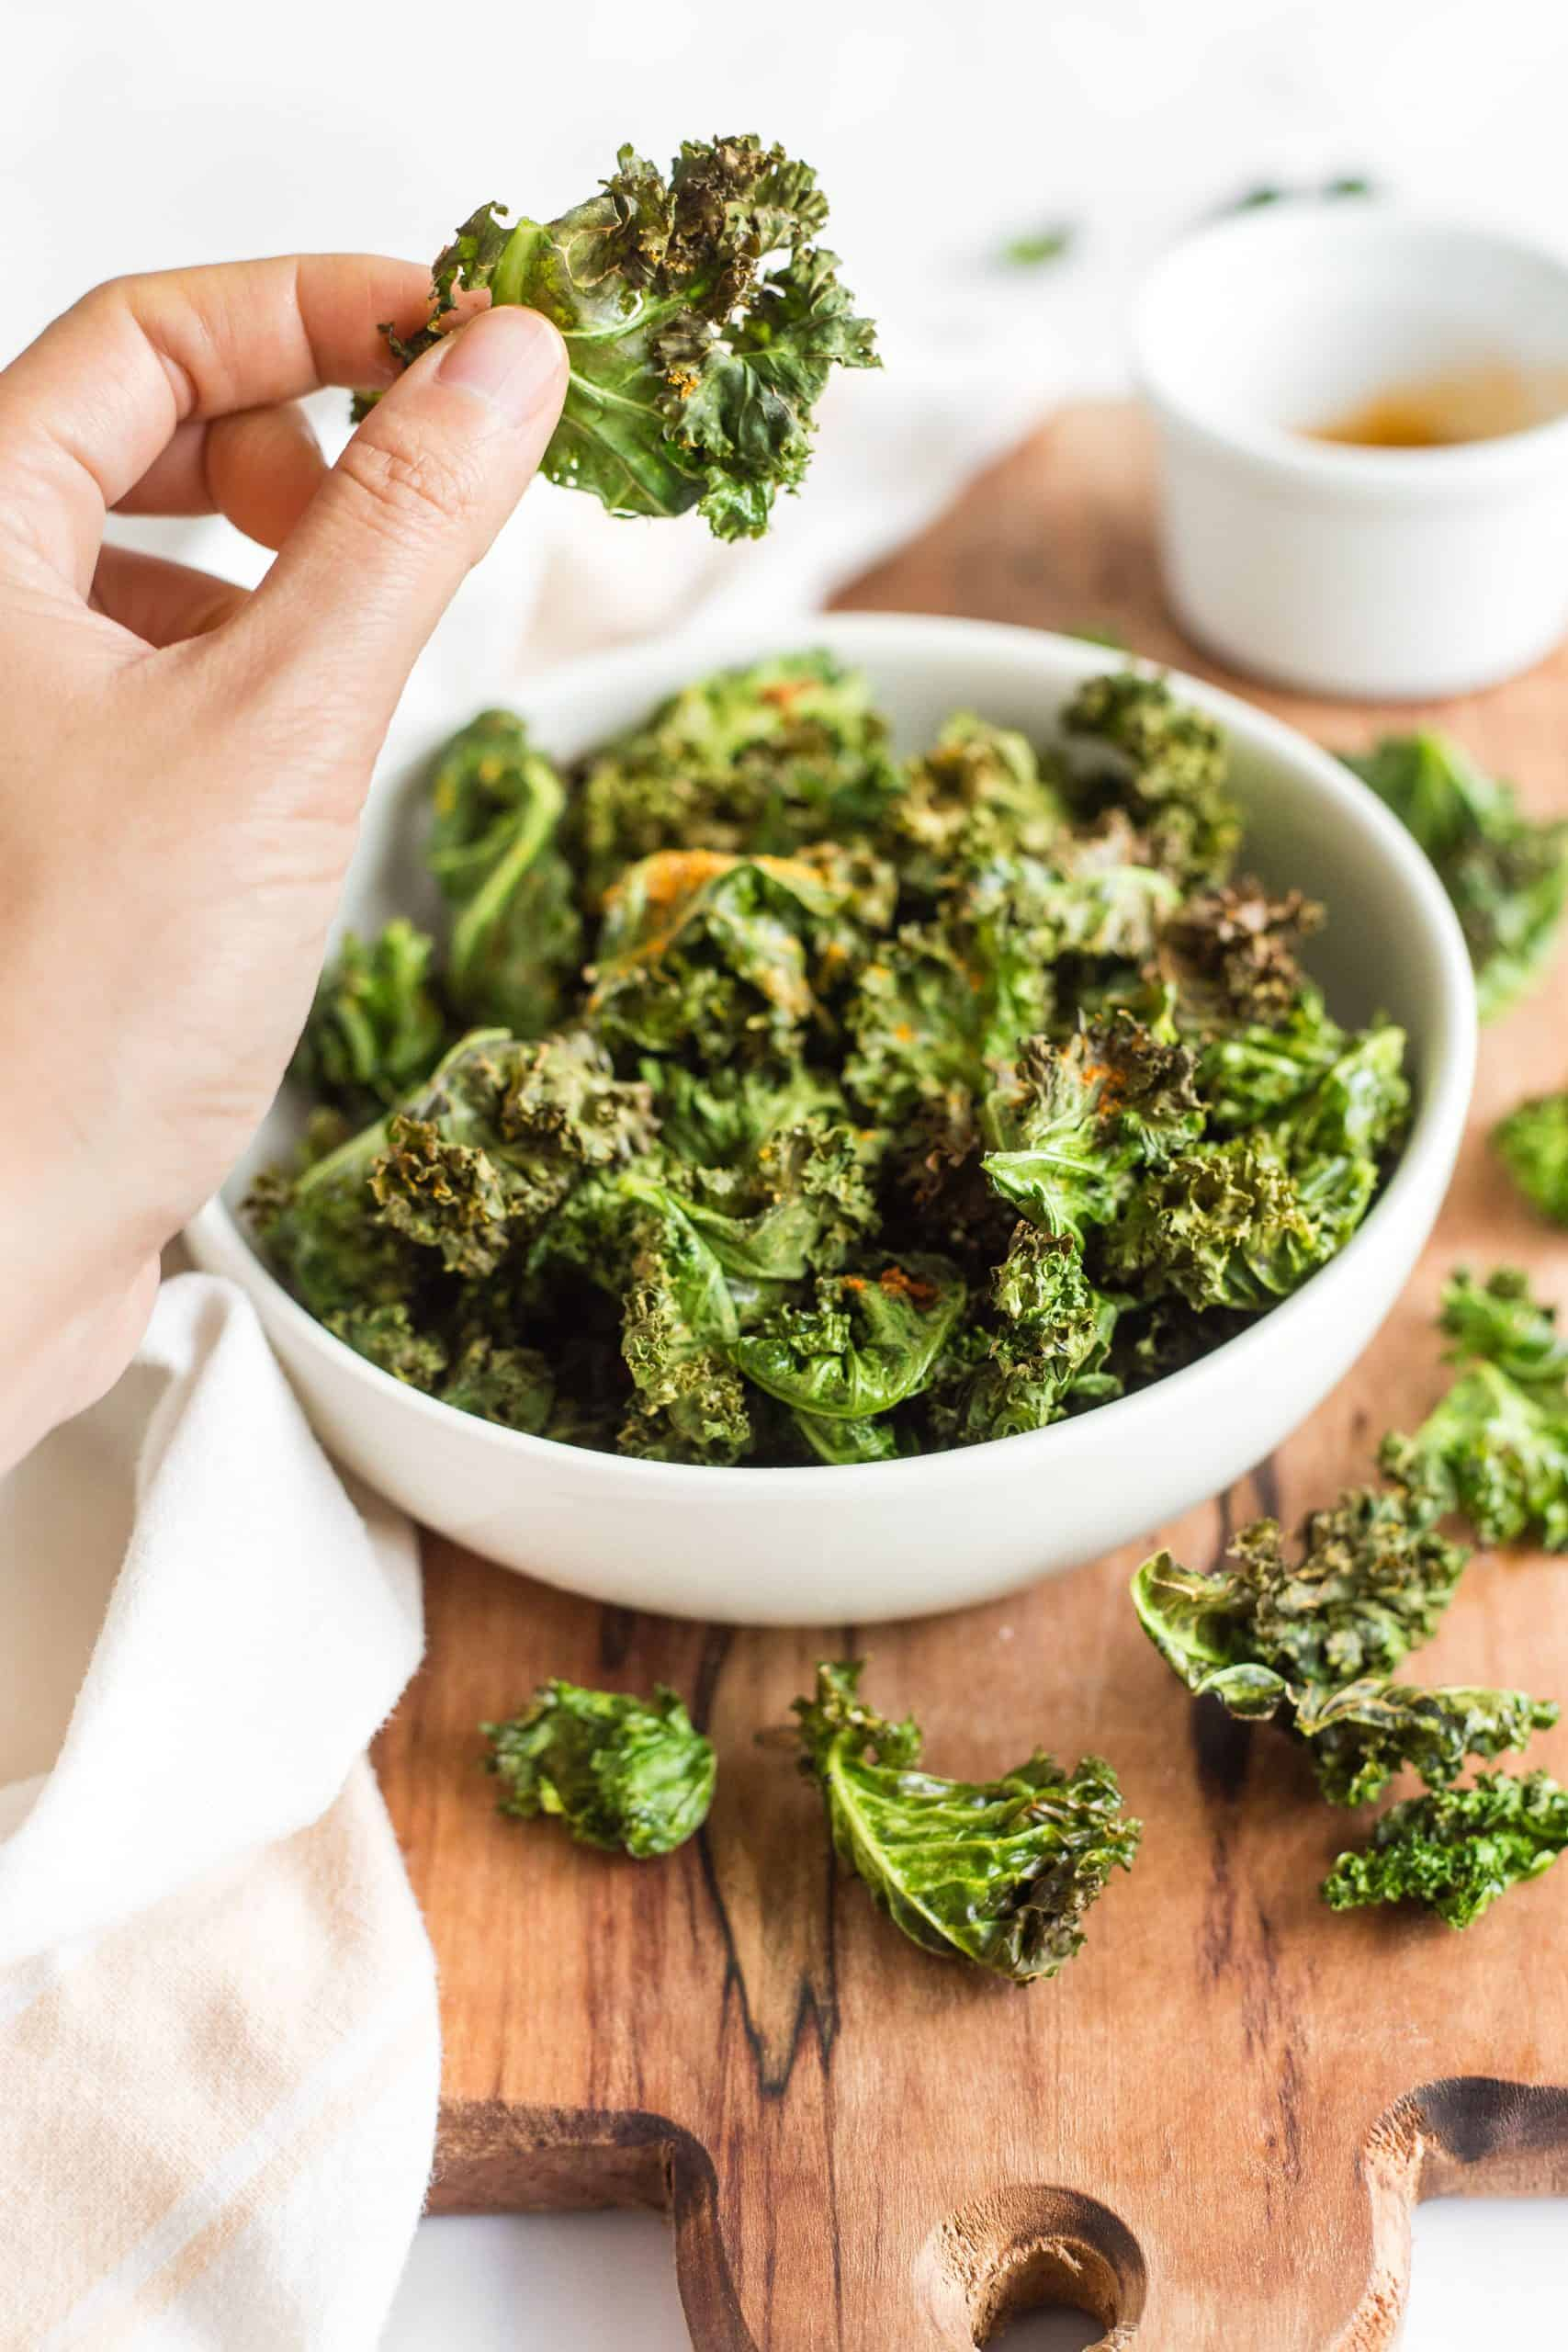 Holding up a kale chip from a bowl.